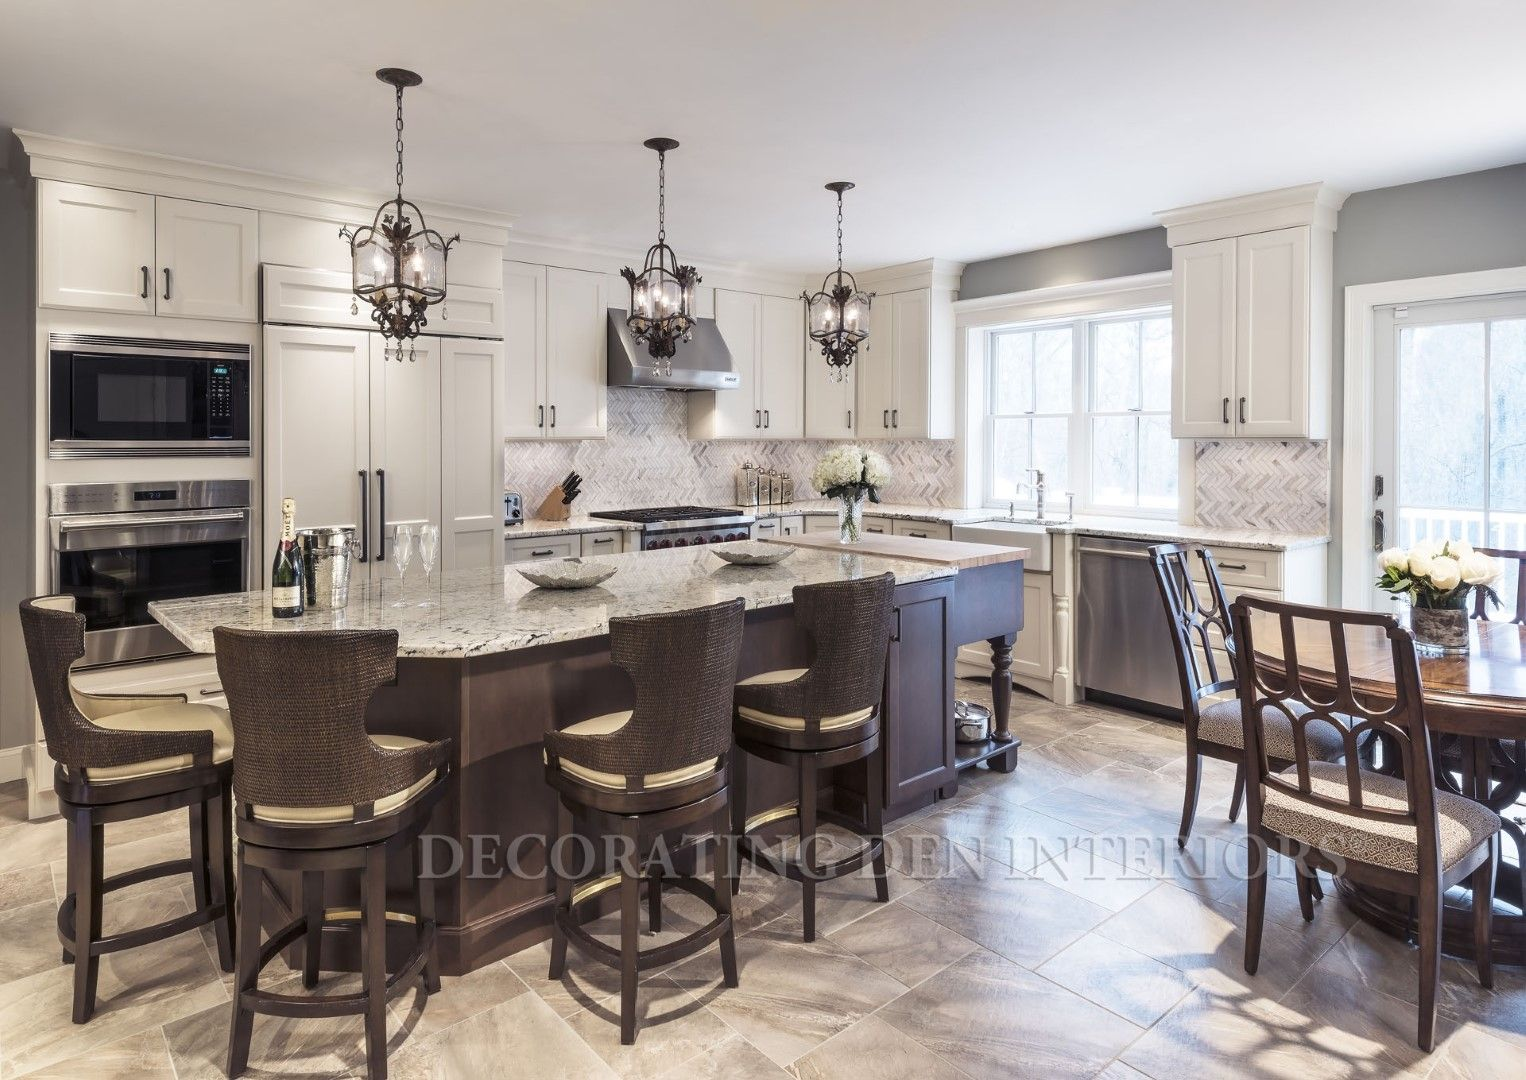 Kitchen design and accessories by Decorating Den Interiors ...